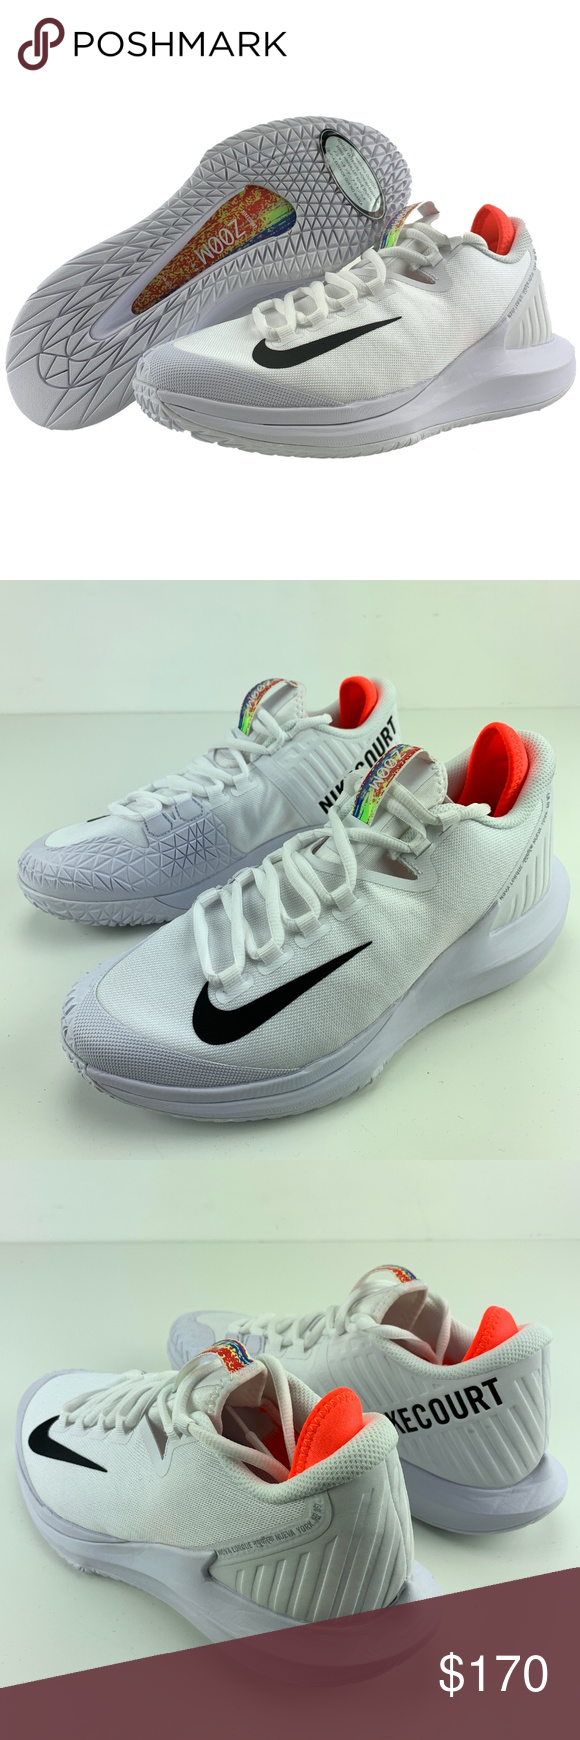 promo code b9f61 28b47 Nike NikeCourt Air Zoom Zero HC Tennis Shoes Nike NikeCourt Air Zoom Zero  HC Tennis Shoes White Black Red Non Marking Outsole Brand New Shoes, Ships  Without ...